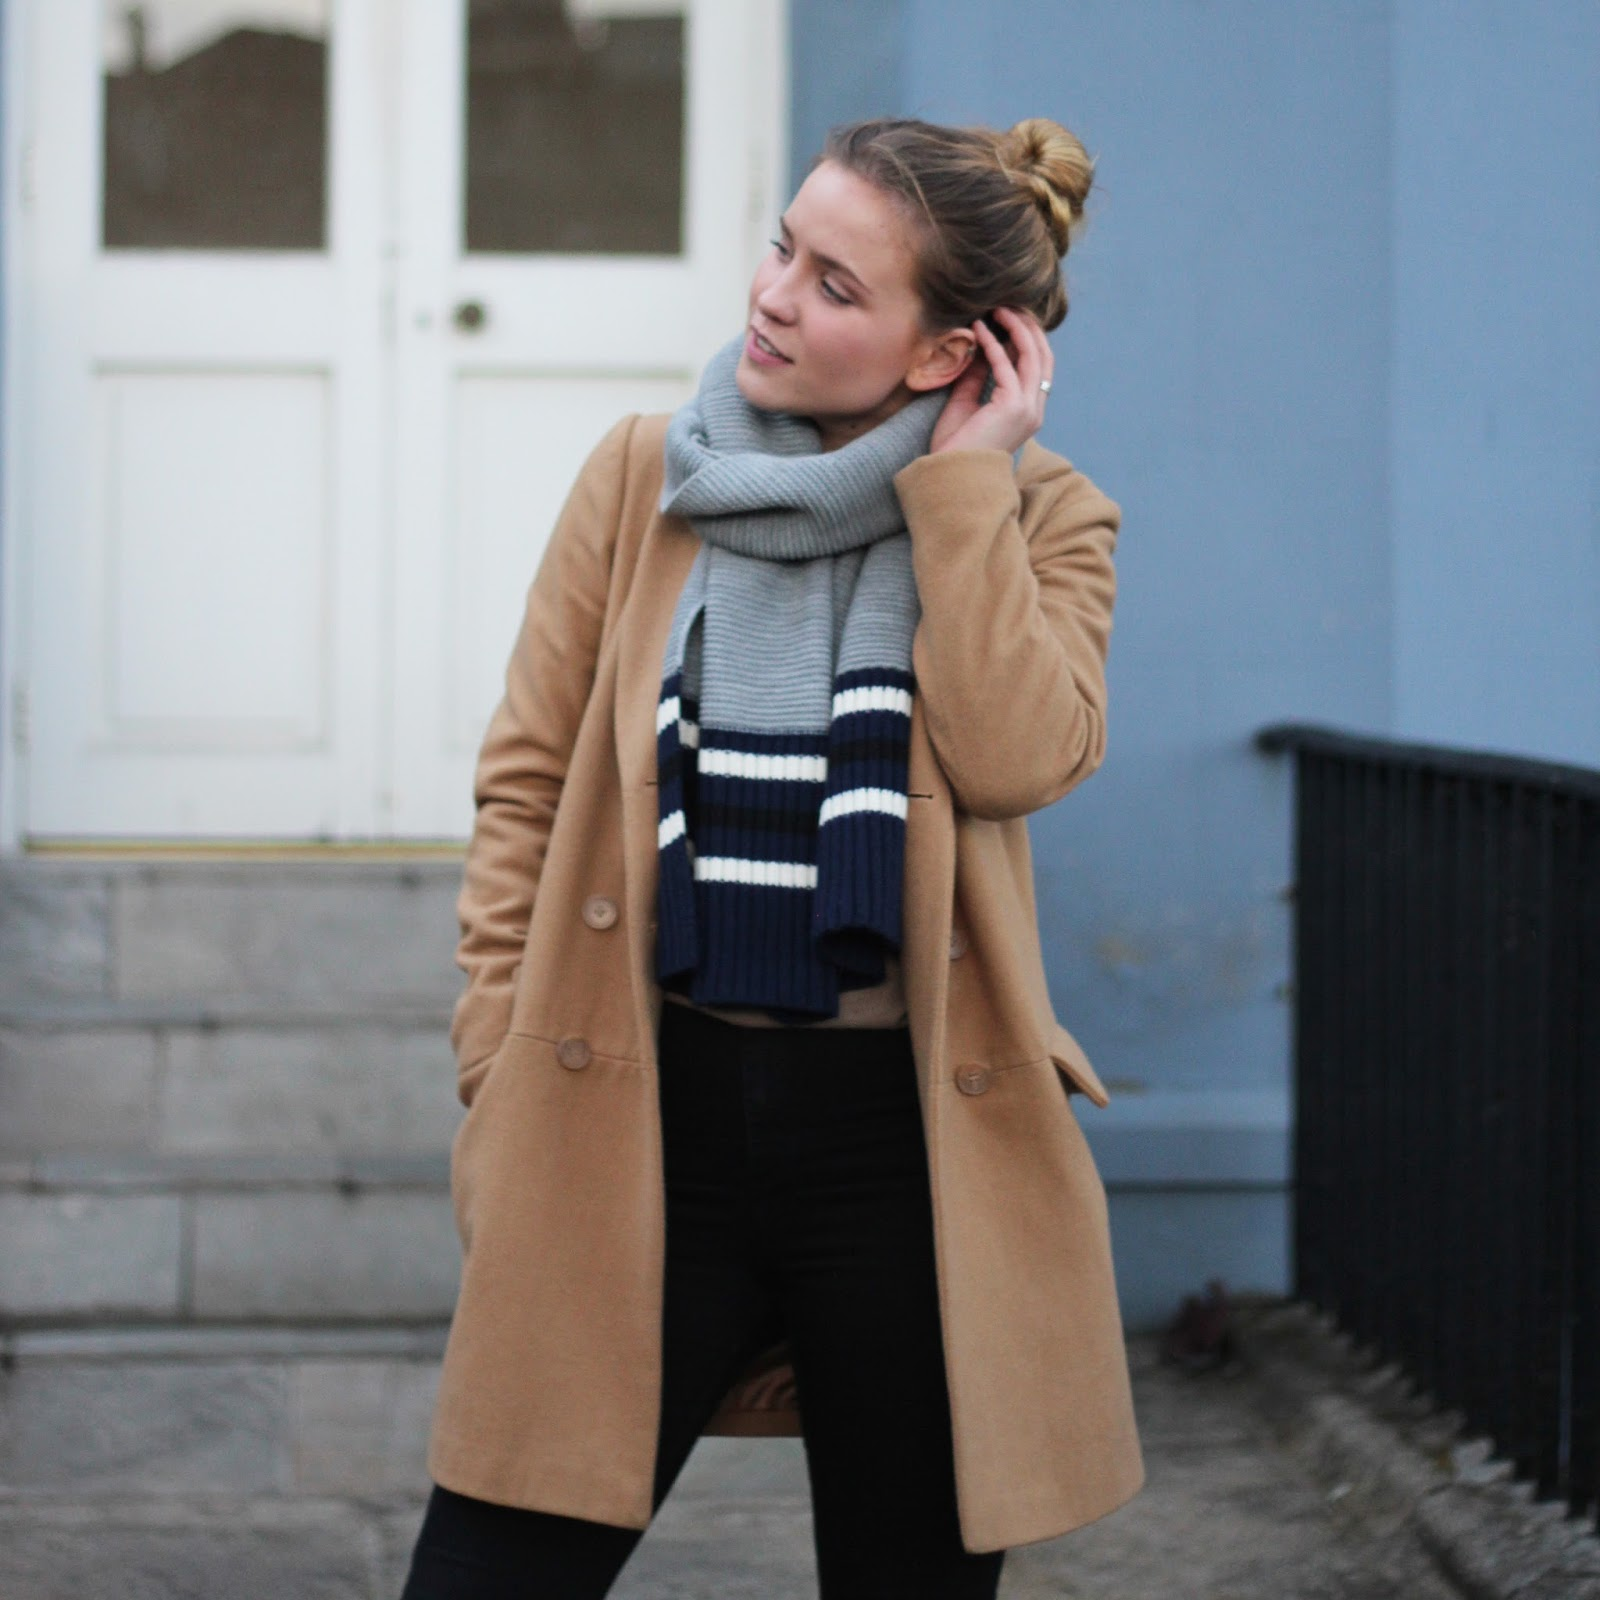 Latest Lil ASOS camel coat street style baby blue suede pumas